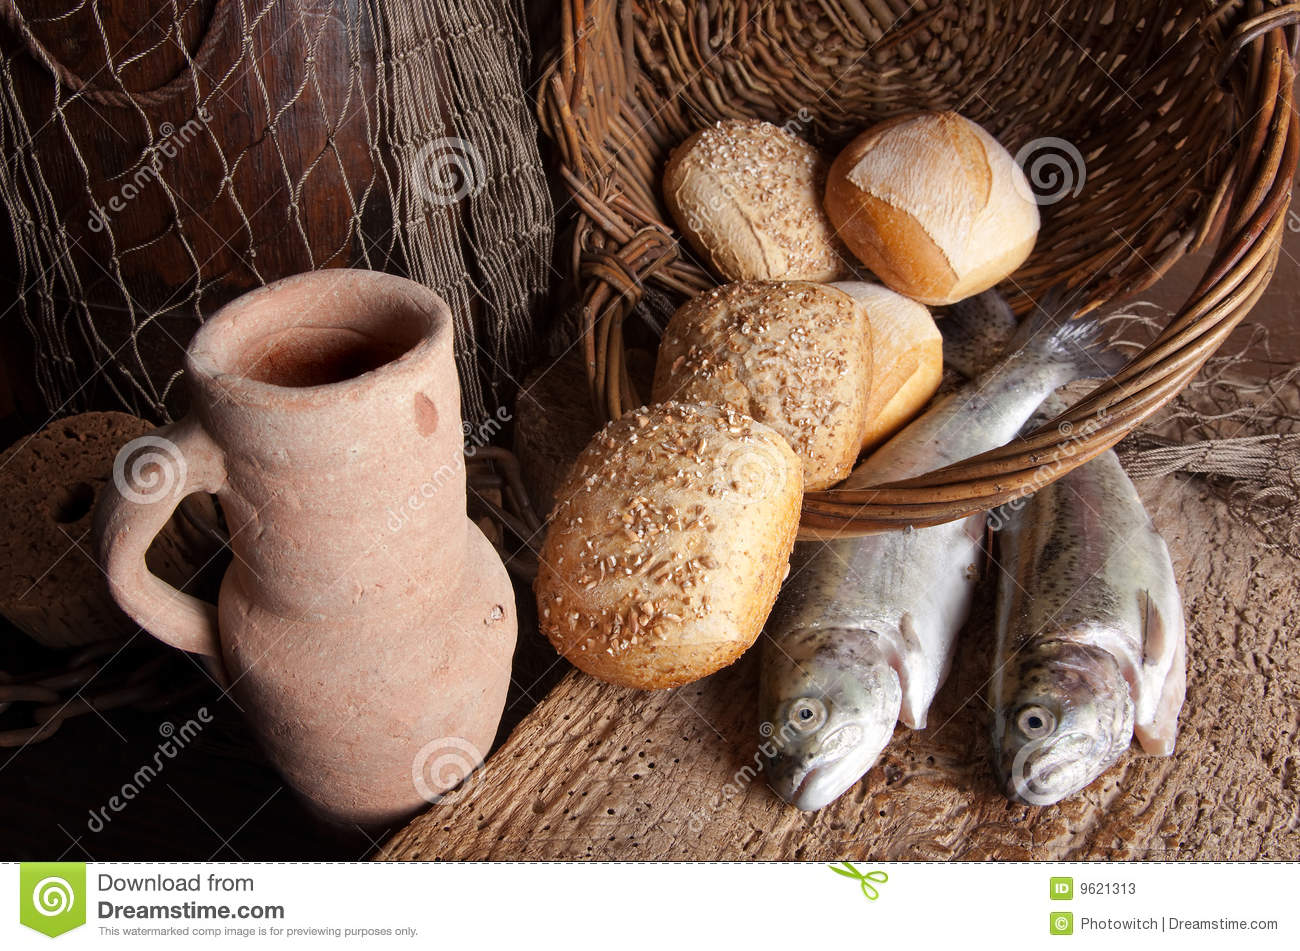 Wine jug with bread and fish stock photos image 9621313 for Fishing with bread